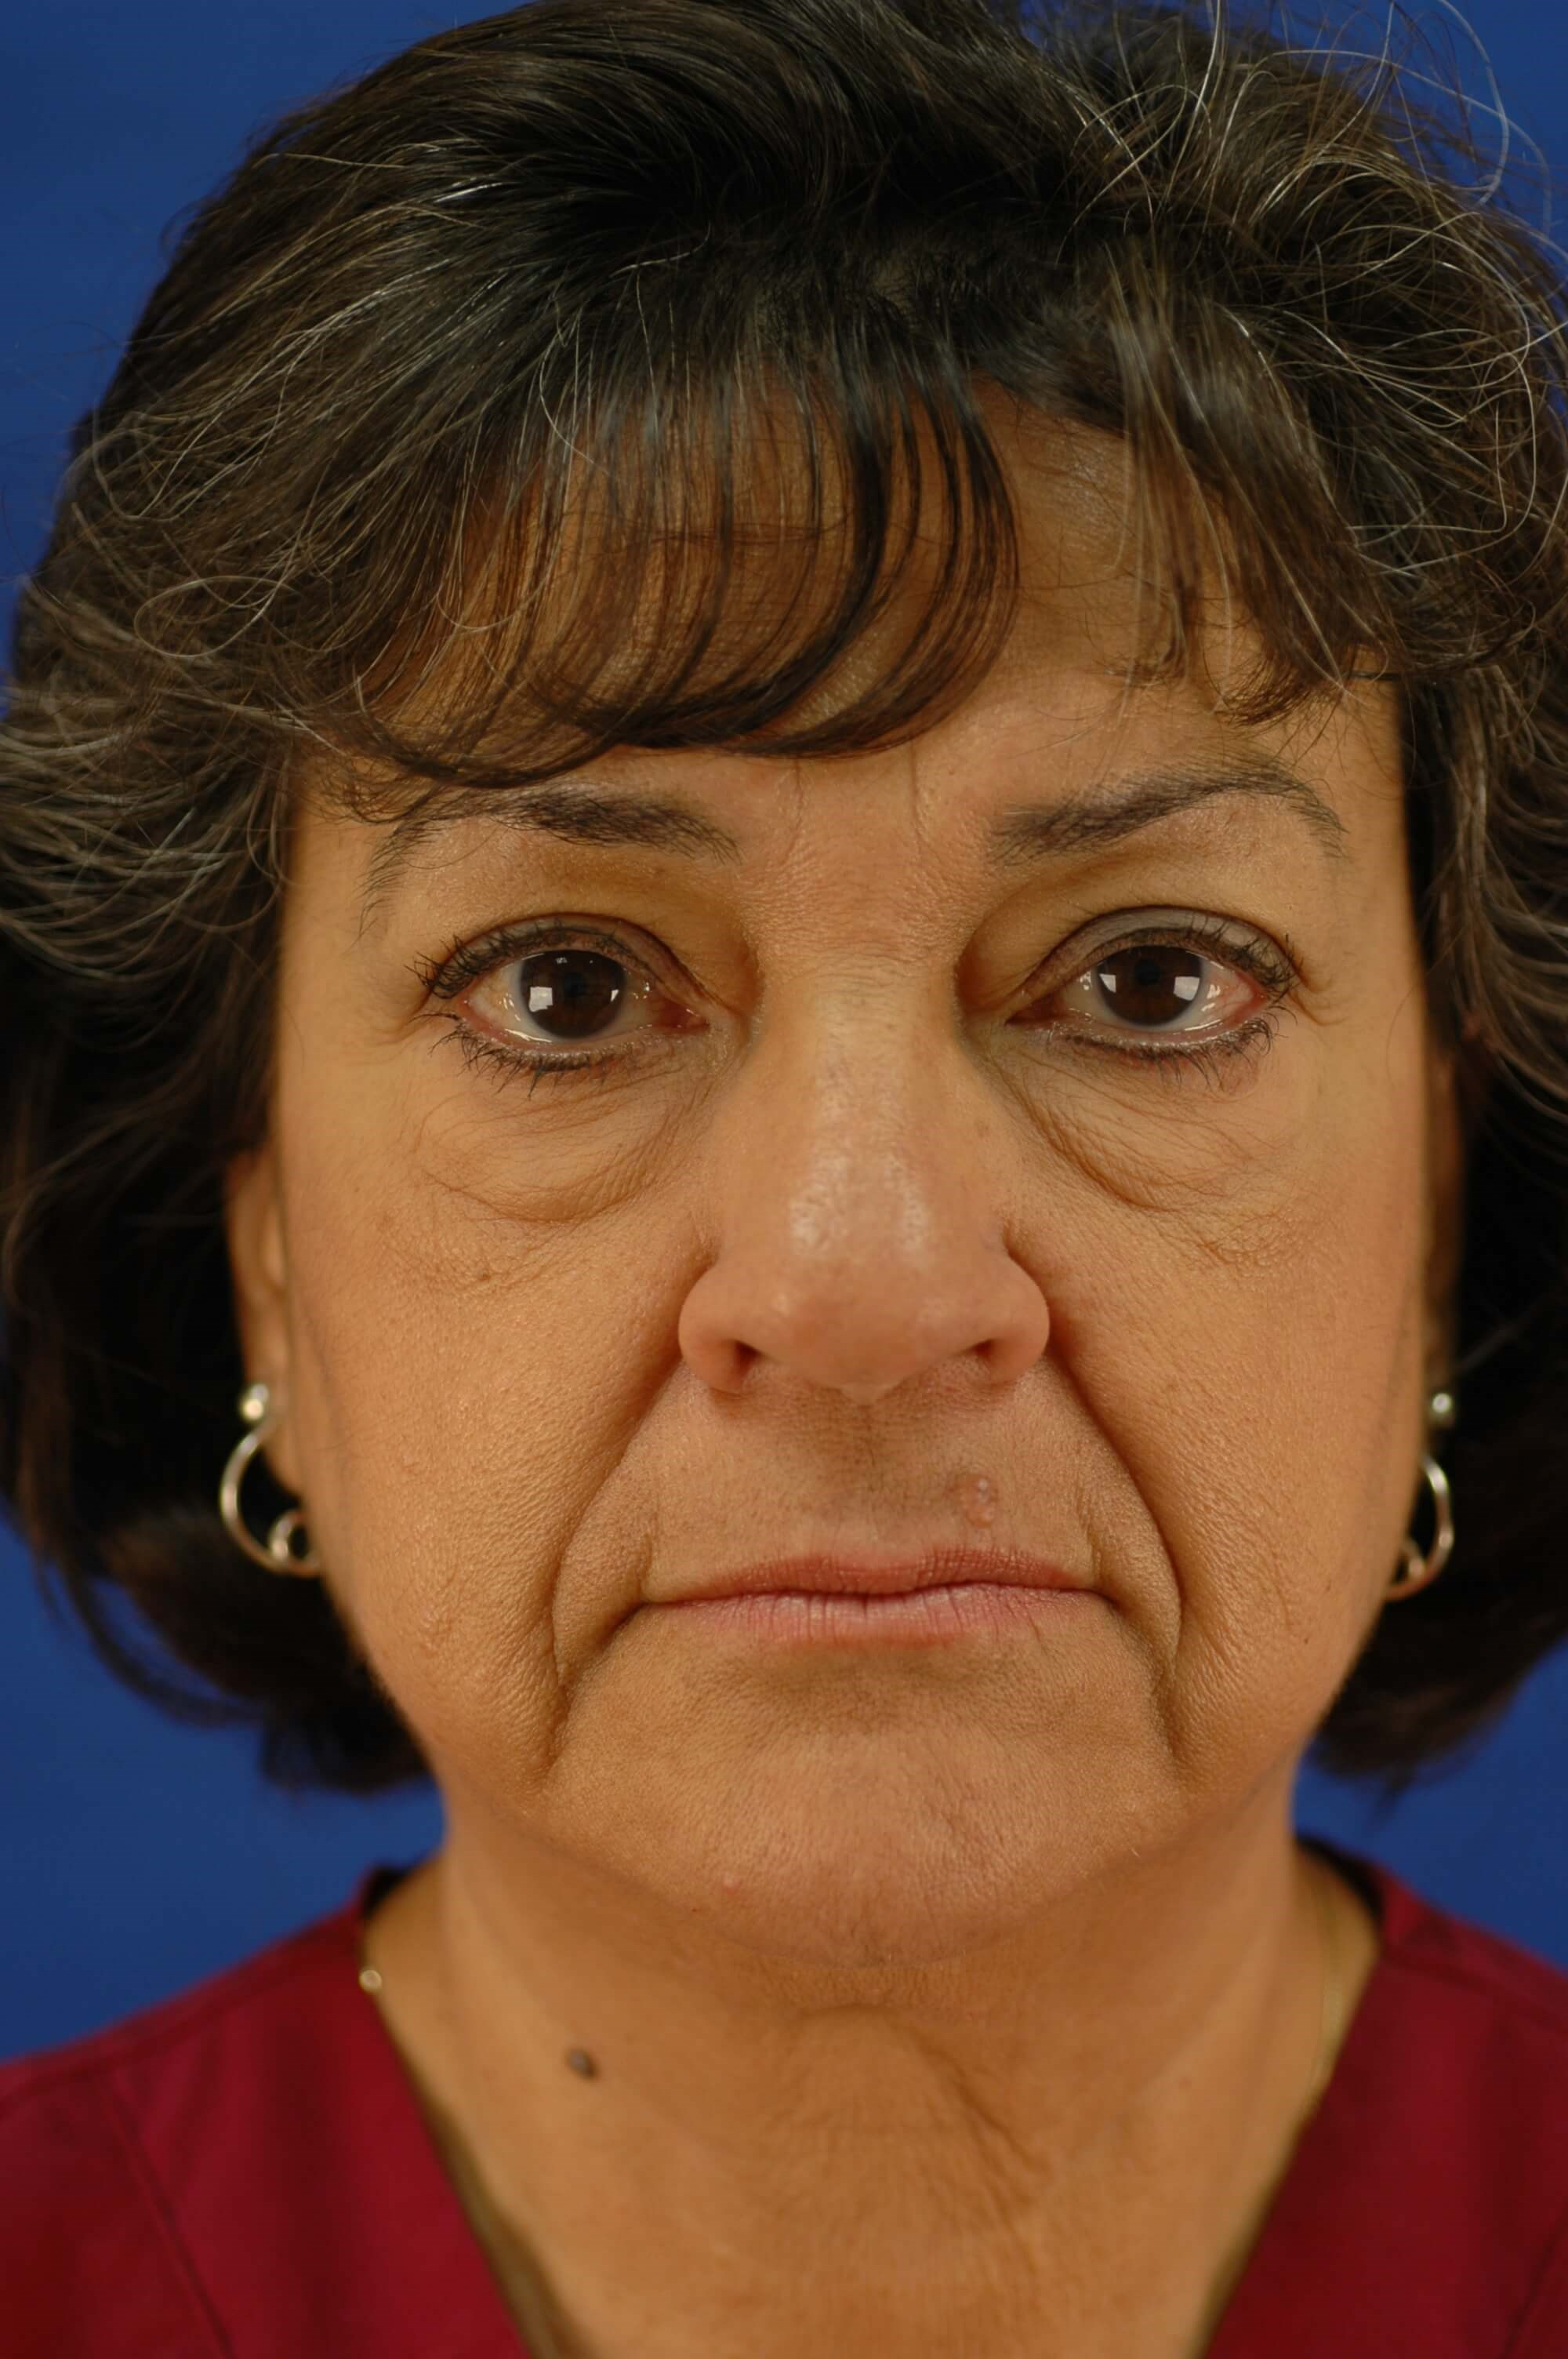 Newport Beach Blepharoplasty Side View Before